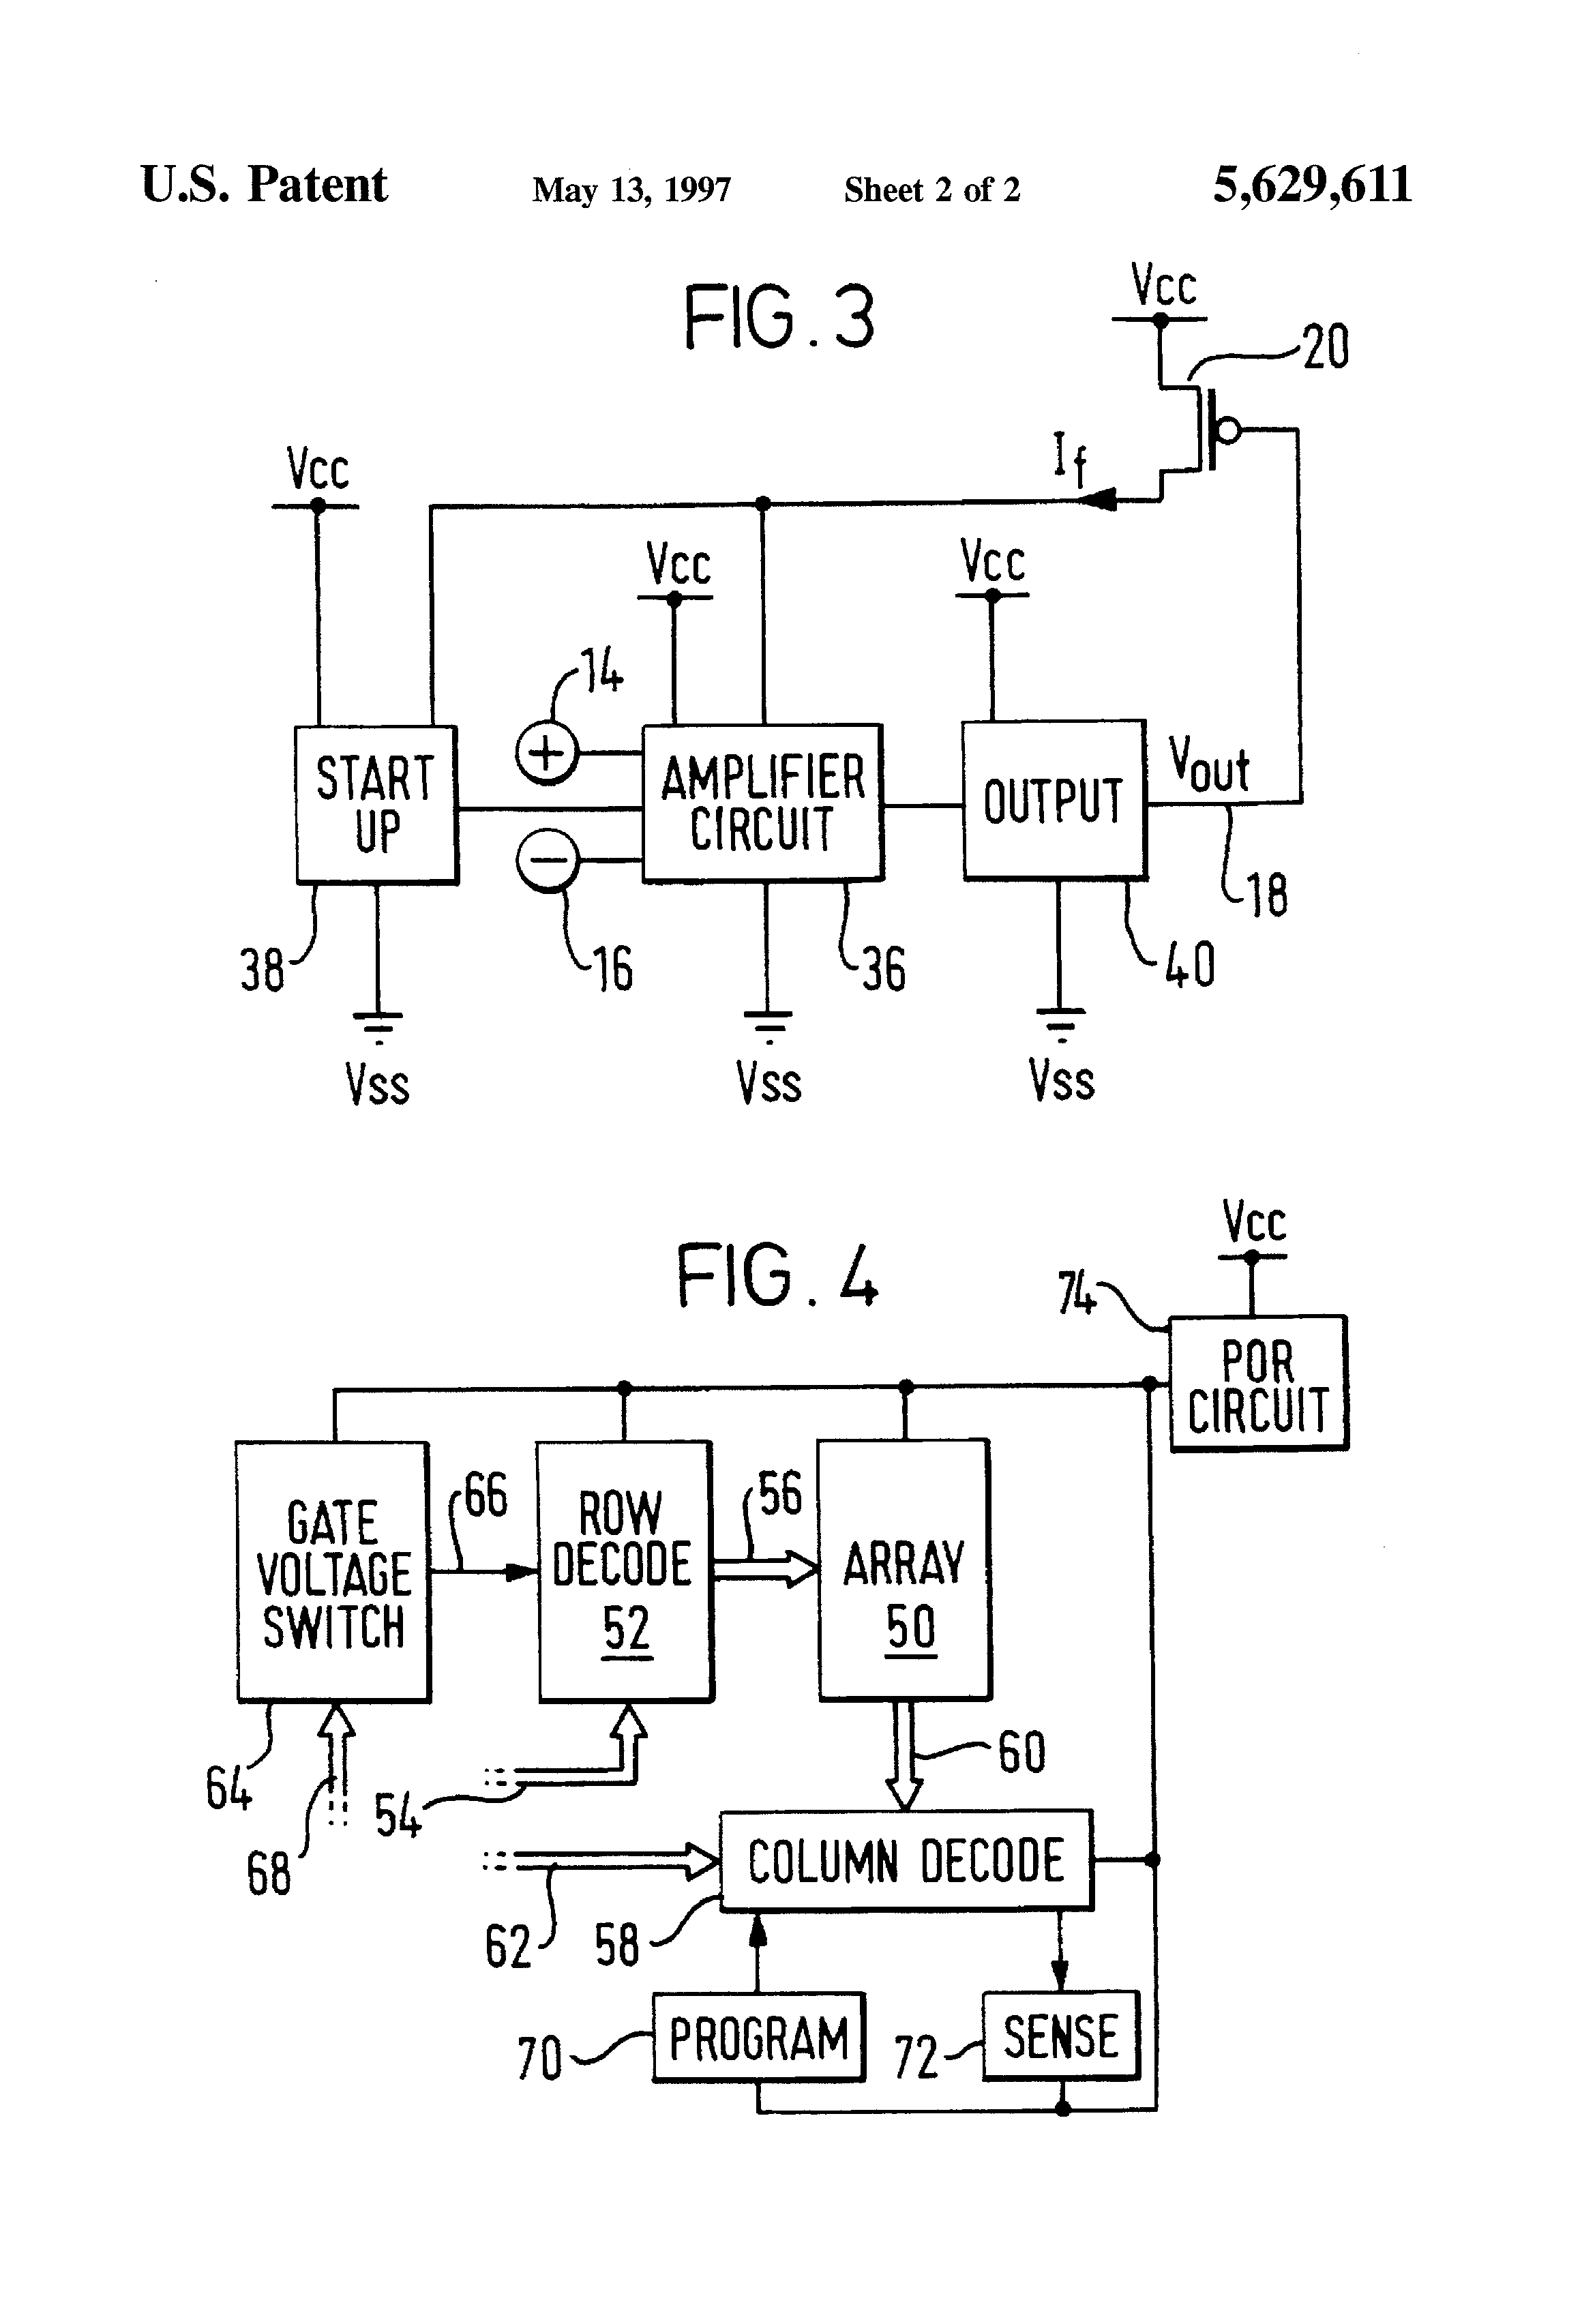 Current Detection Part Circuit Diagram Amplifiercircuit Patent Us5629611 Generator For Generating Drawing